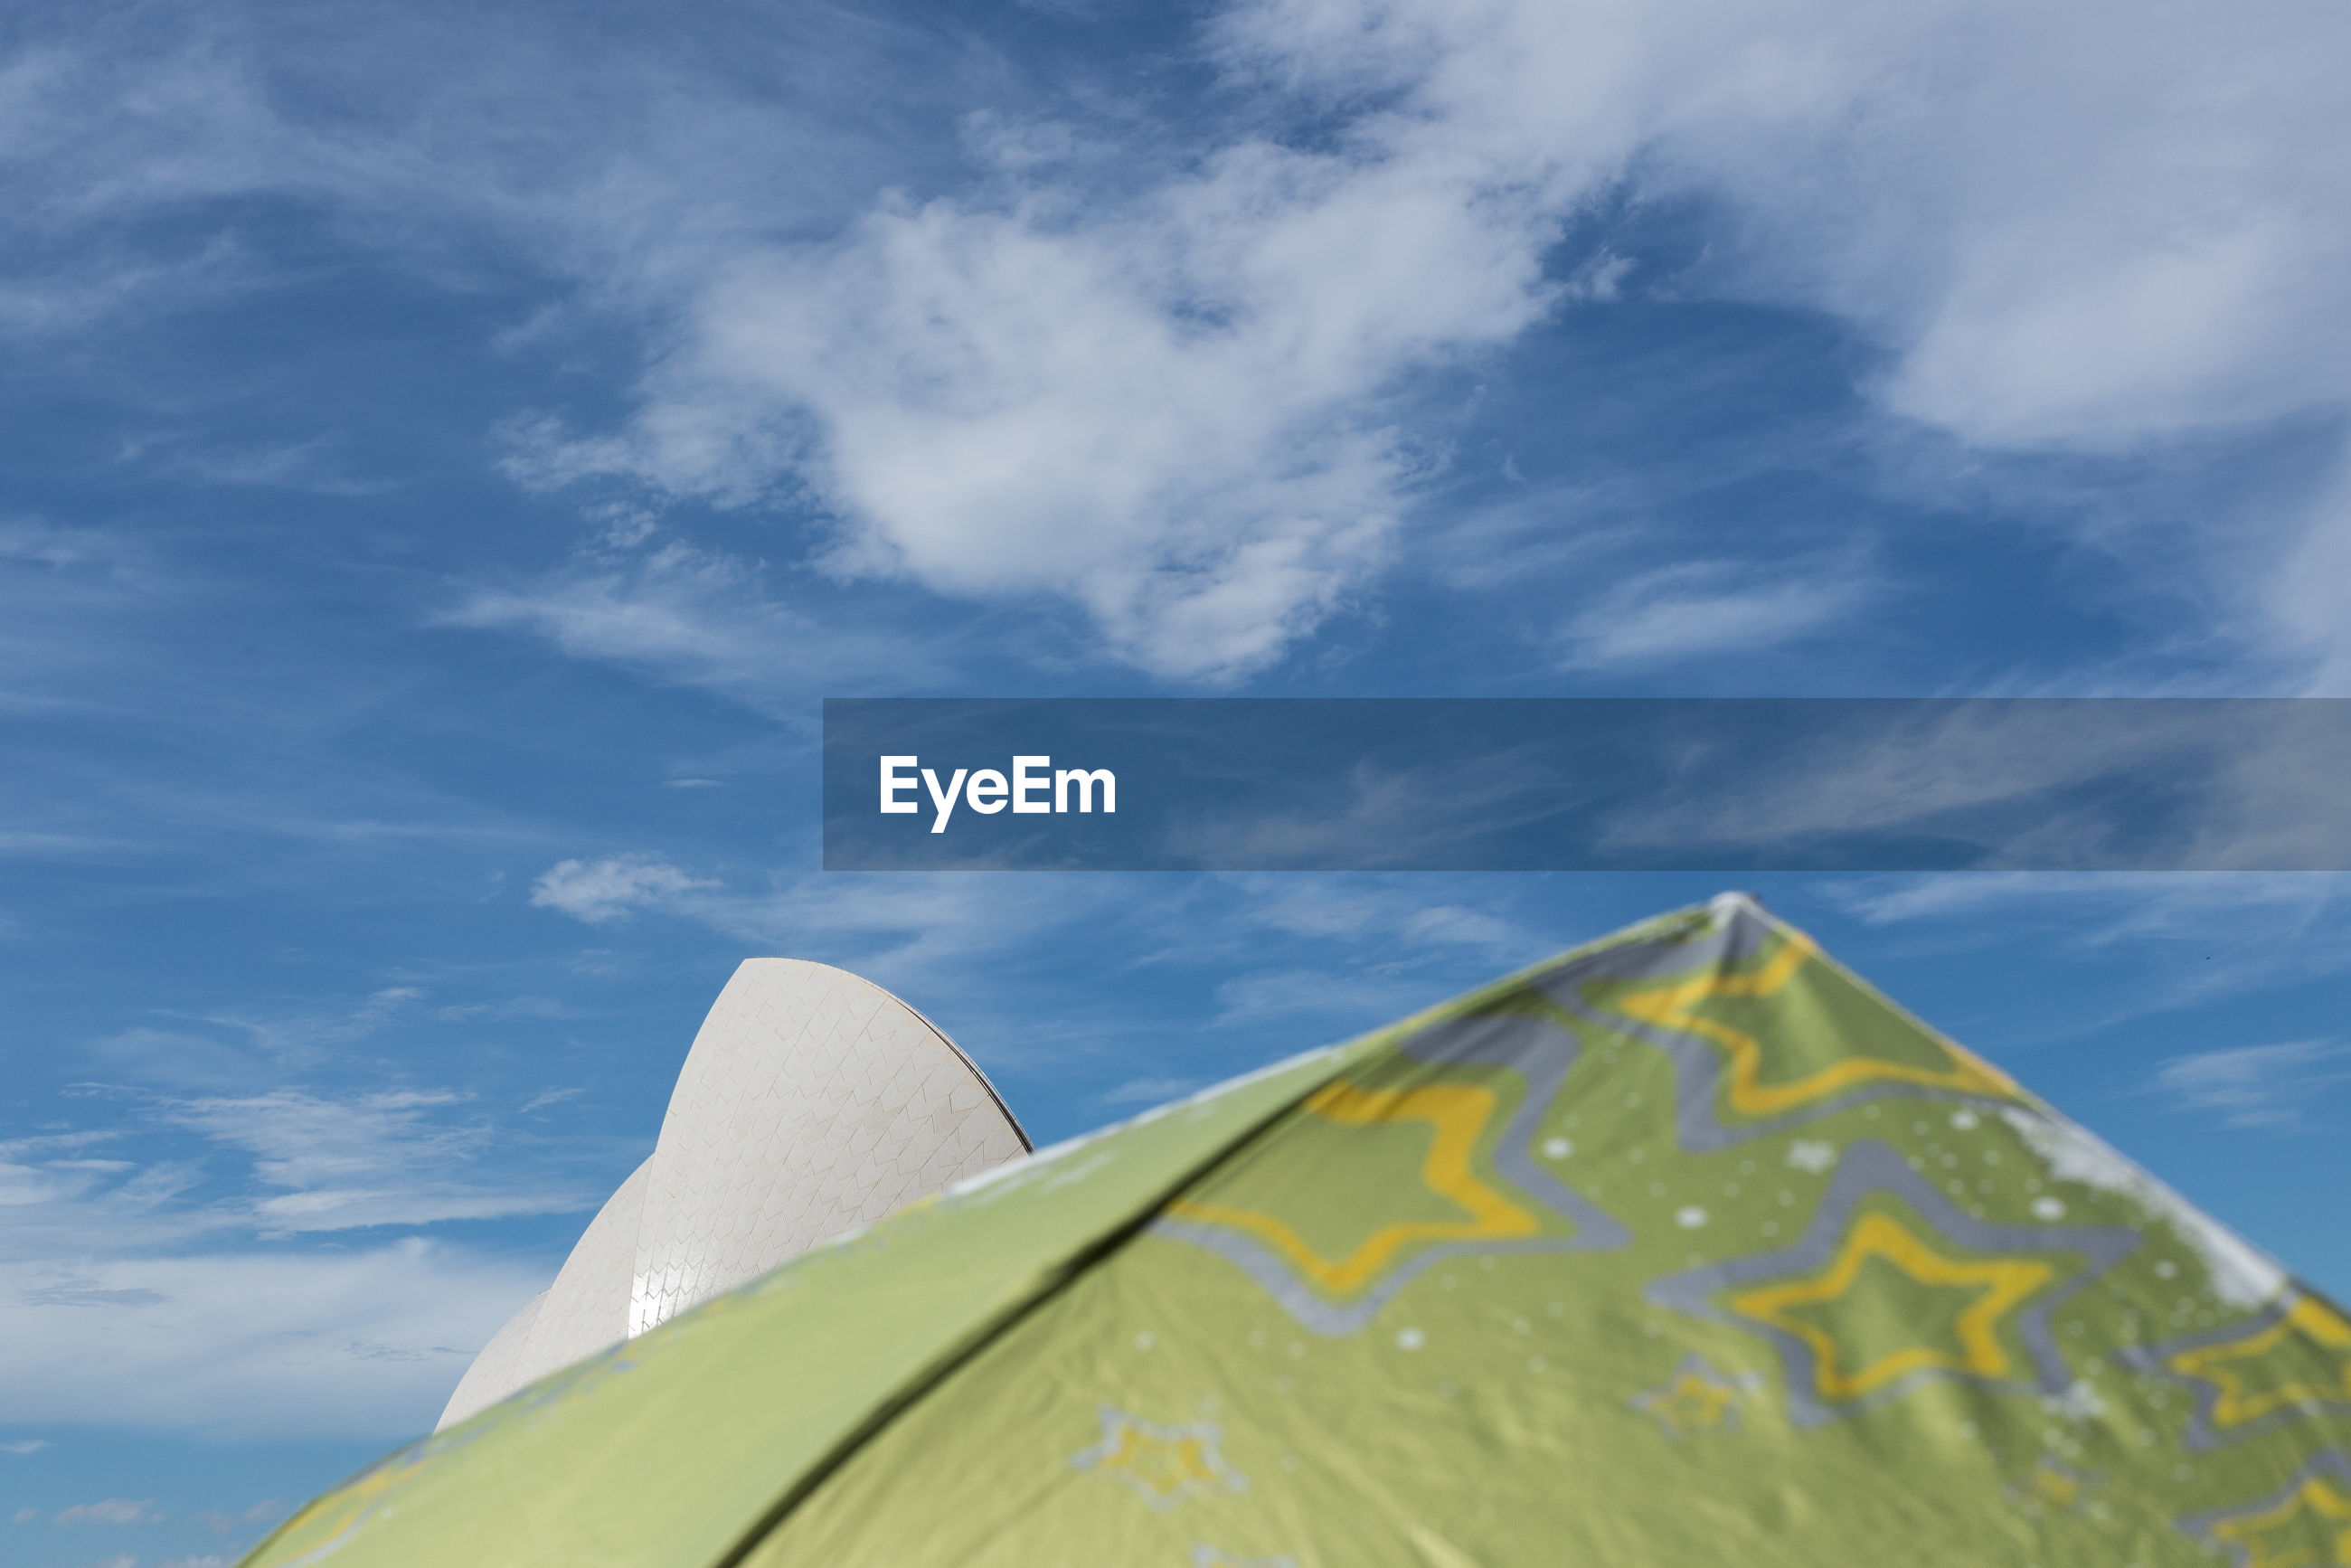 Low angle view of green umbrella against blue sky